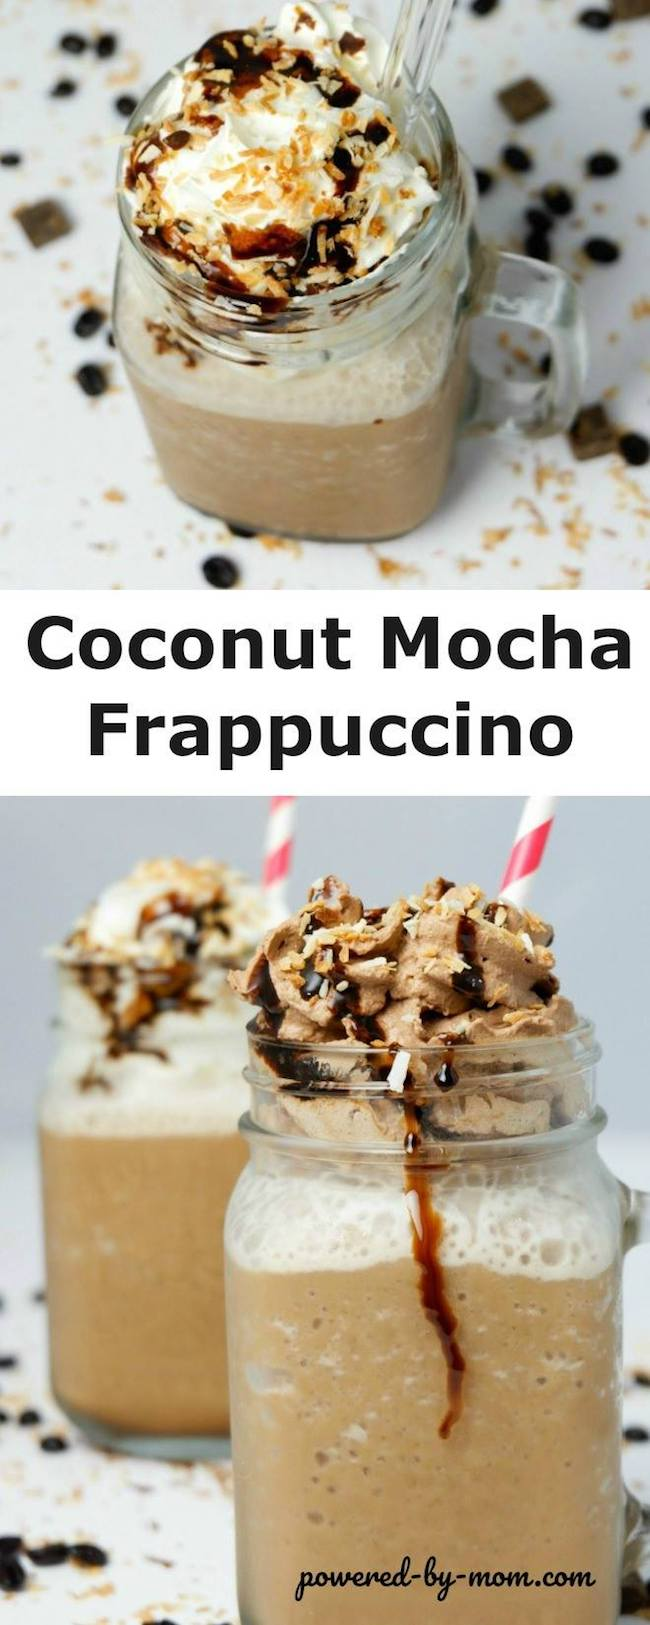 Today it's a yummy Coconut Mocha Frappuccino from Powered by Mom. If you love coconut, chocolate and coffee you'll love this cool summer treat.